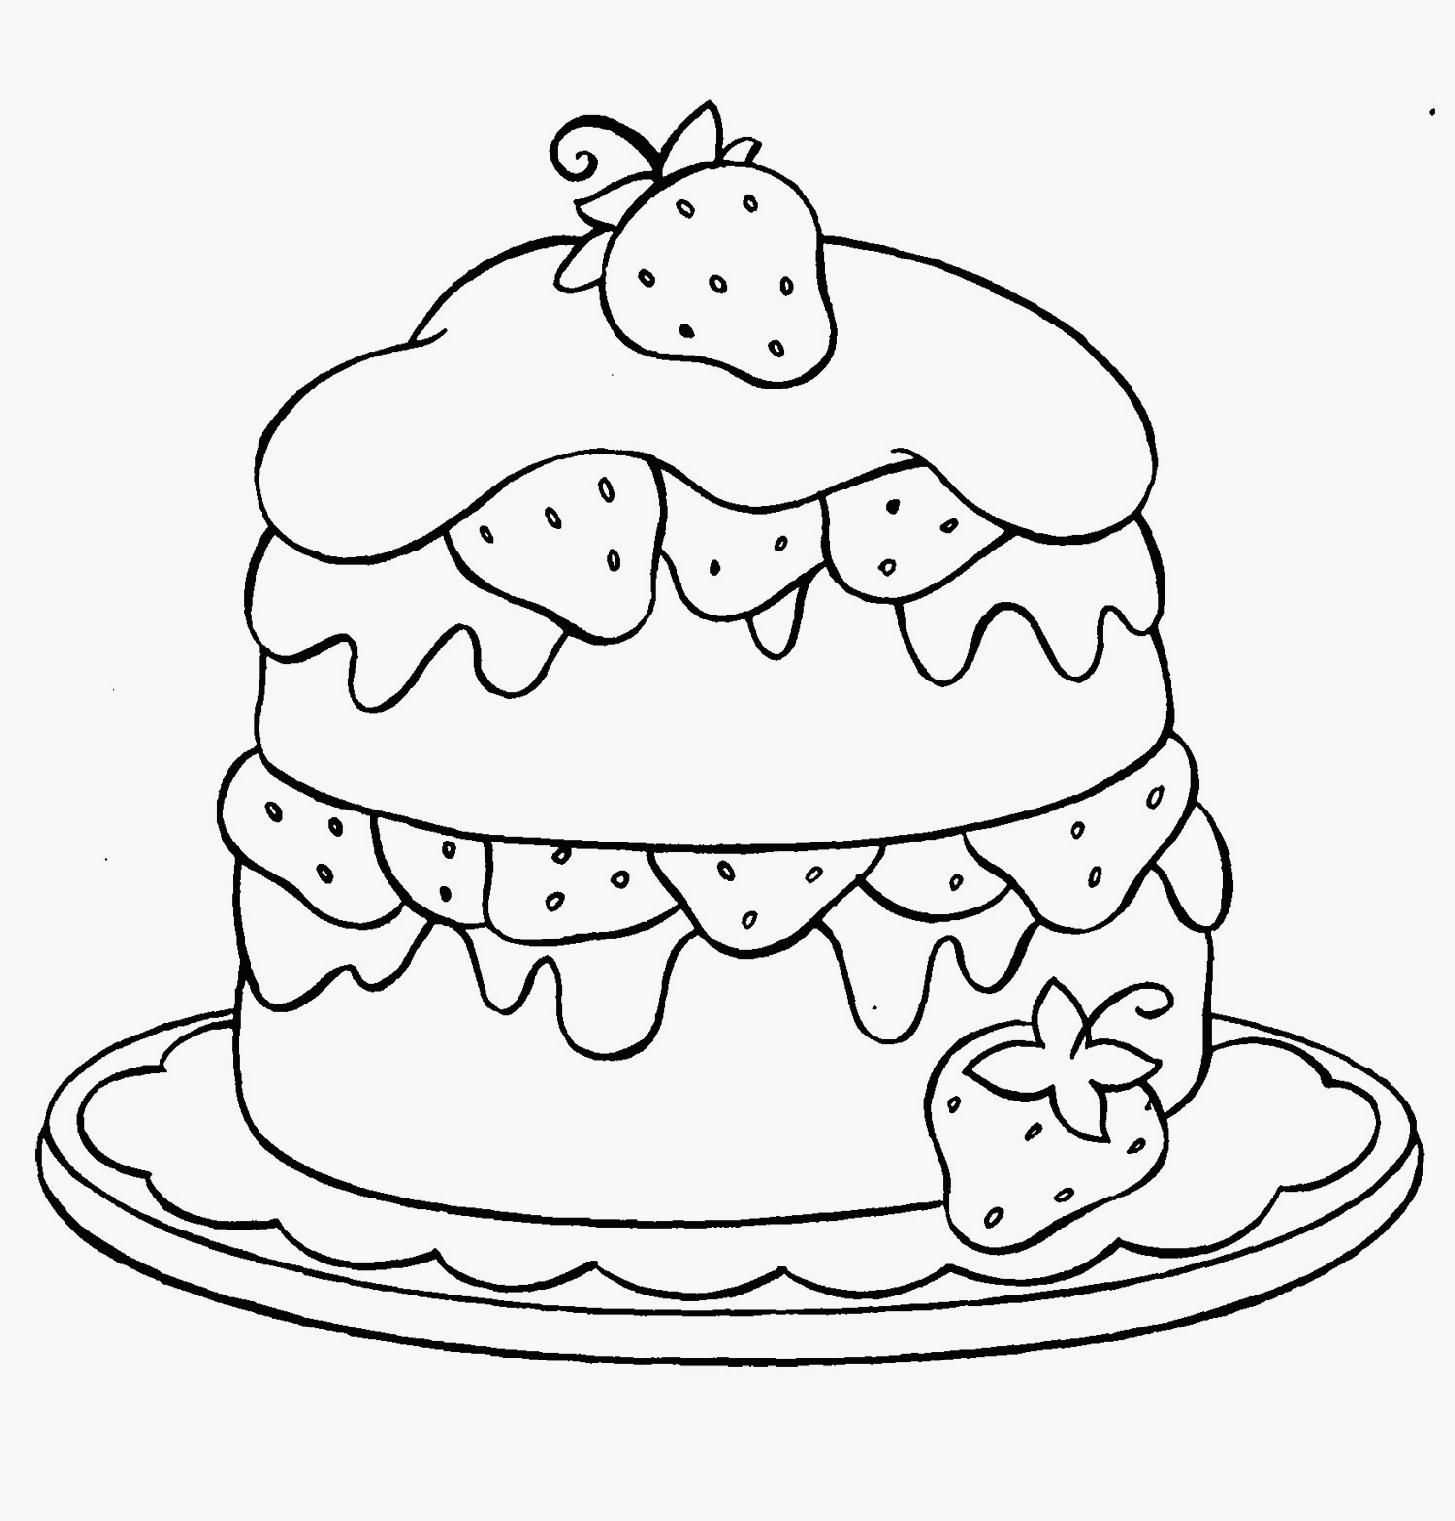 Cupcake Free Coloring Pages For Kids Happy Birthday Cupcake ...